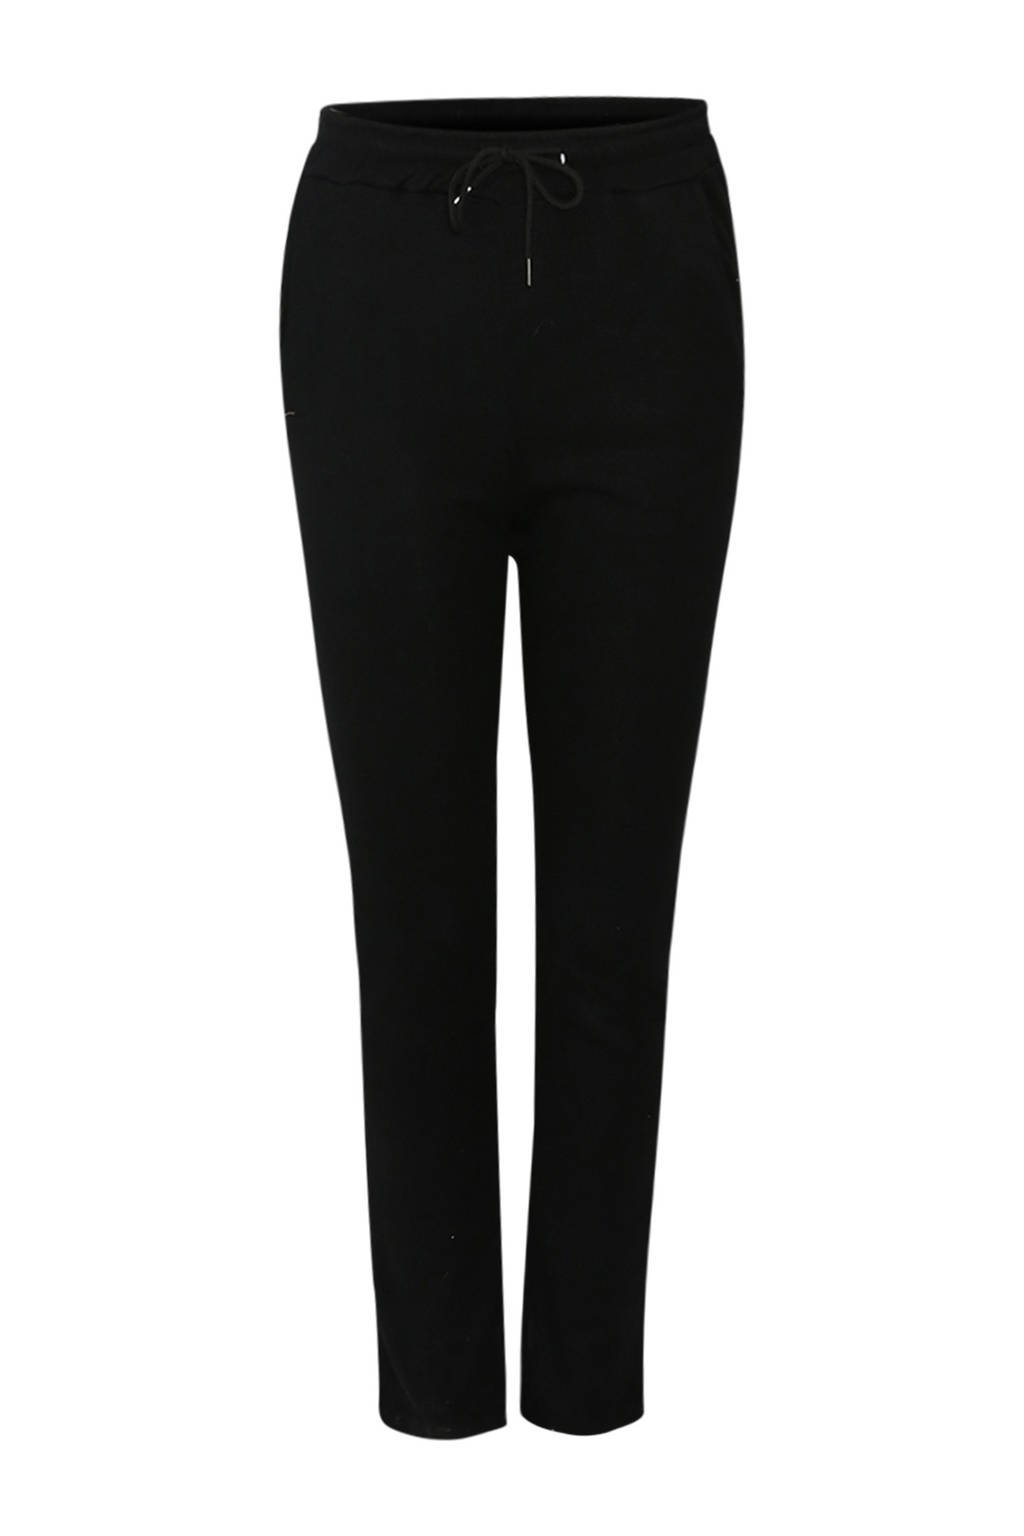 Paprika slim fit joggingbroek zwart, Zwart